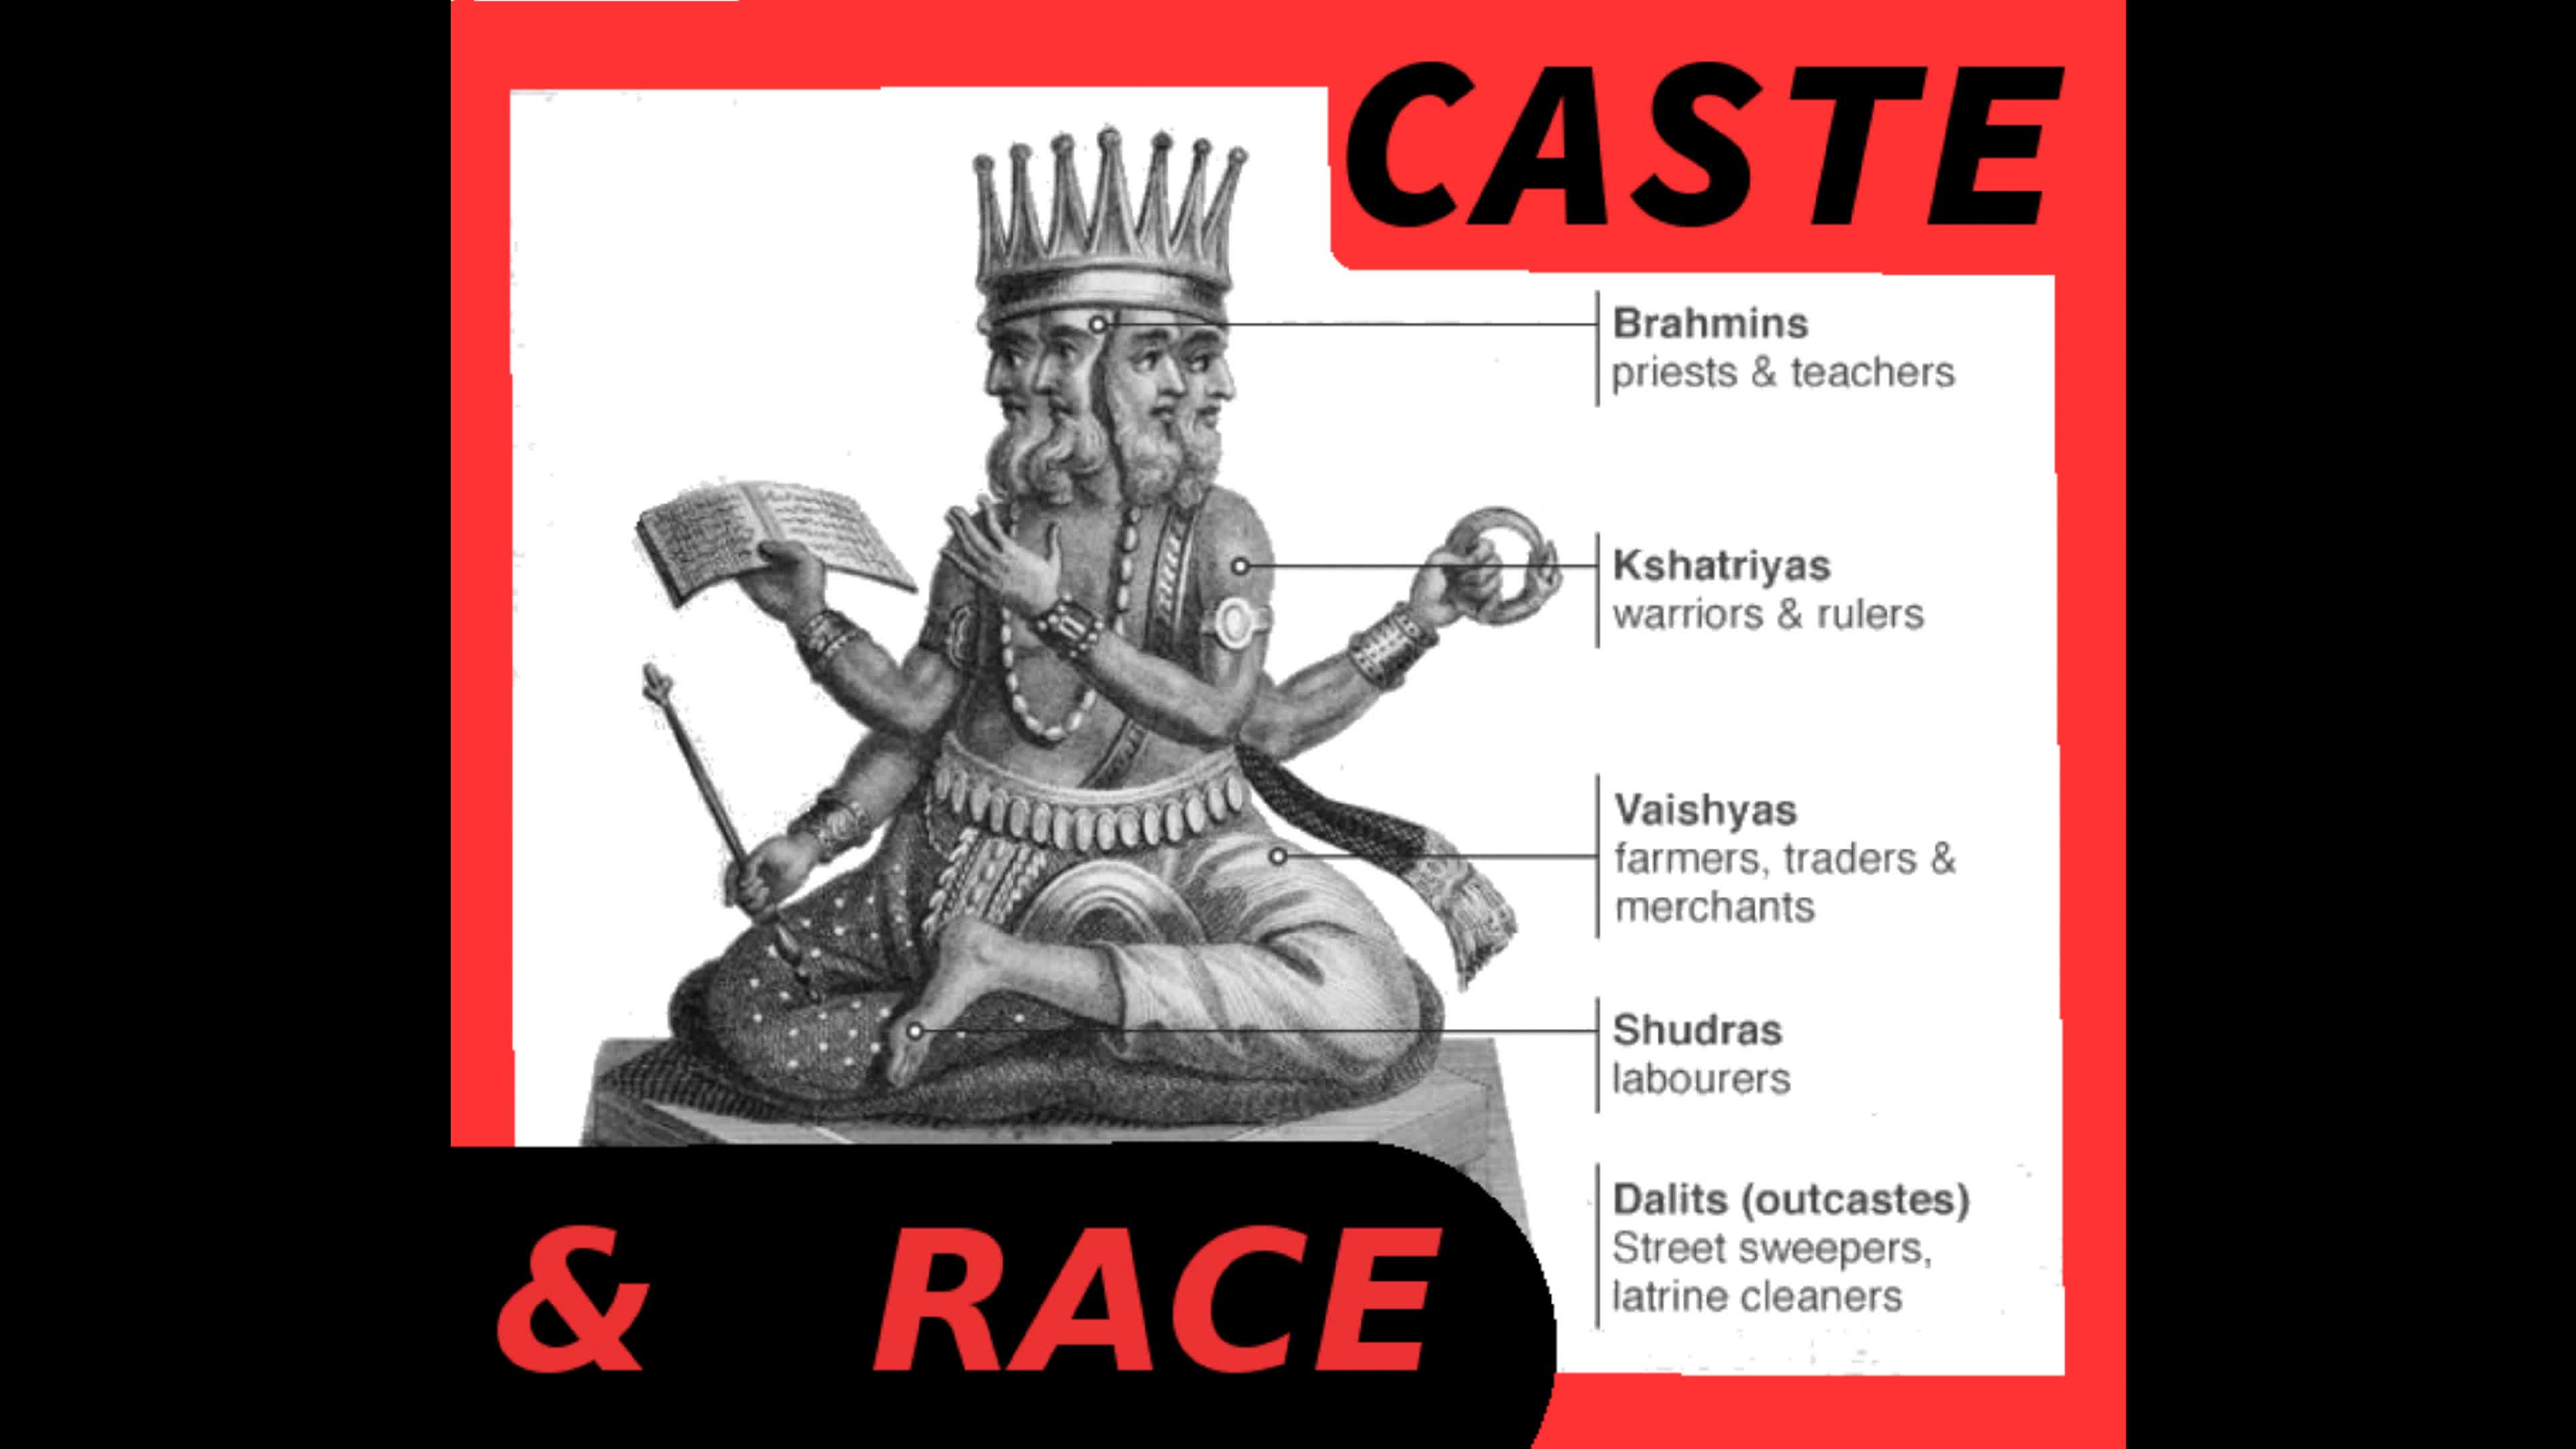 Caste and Race